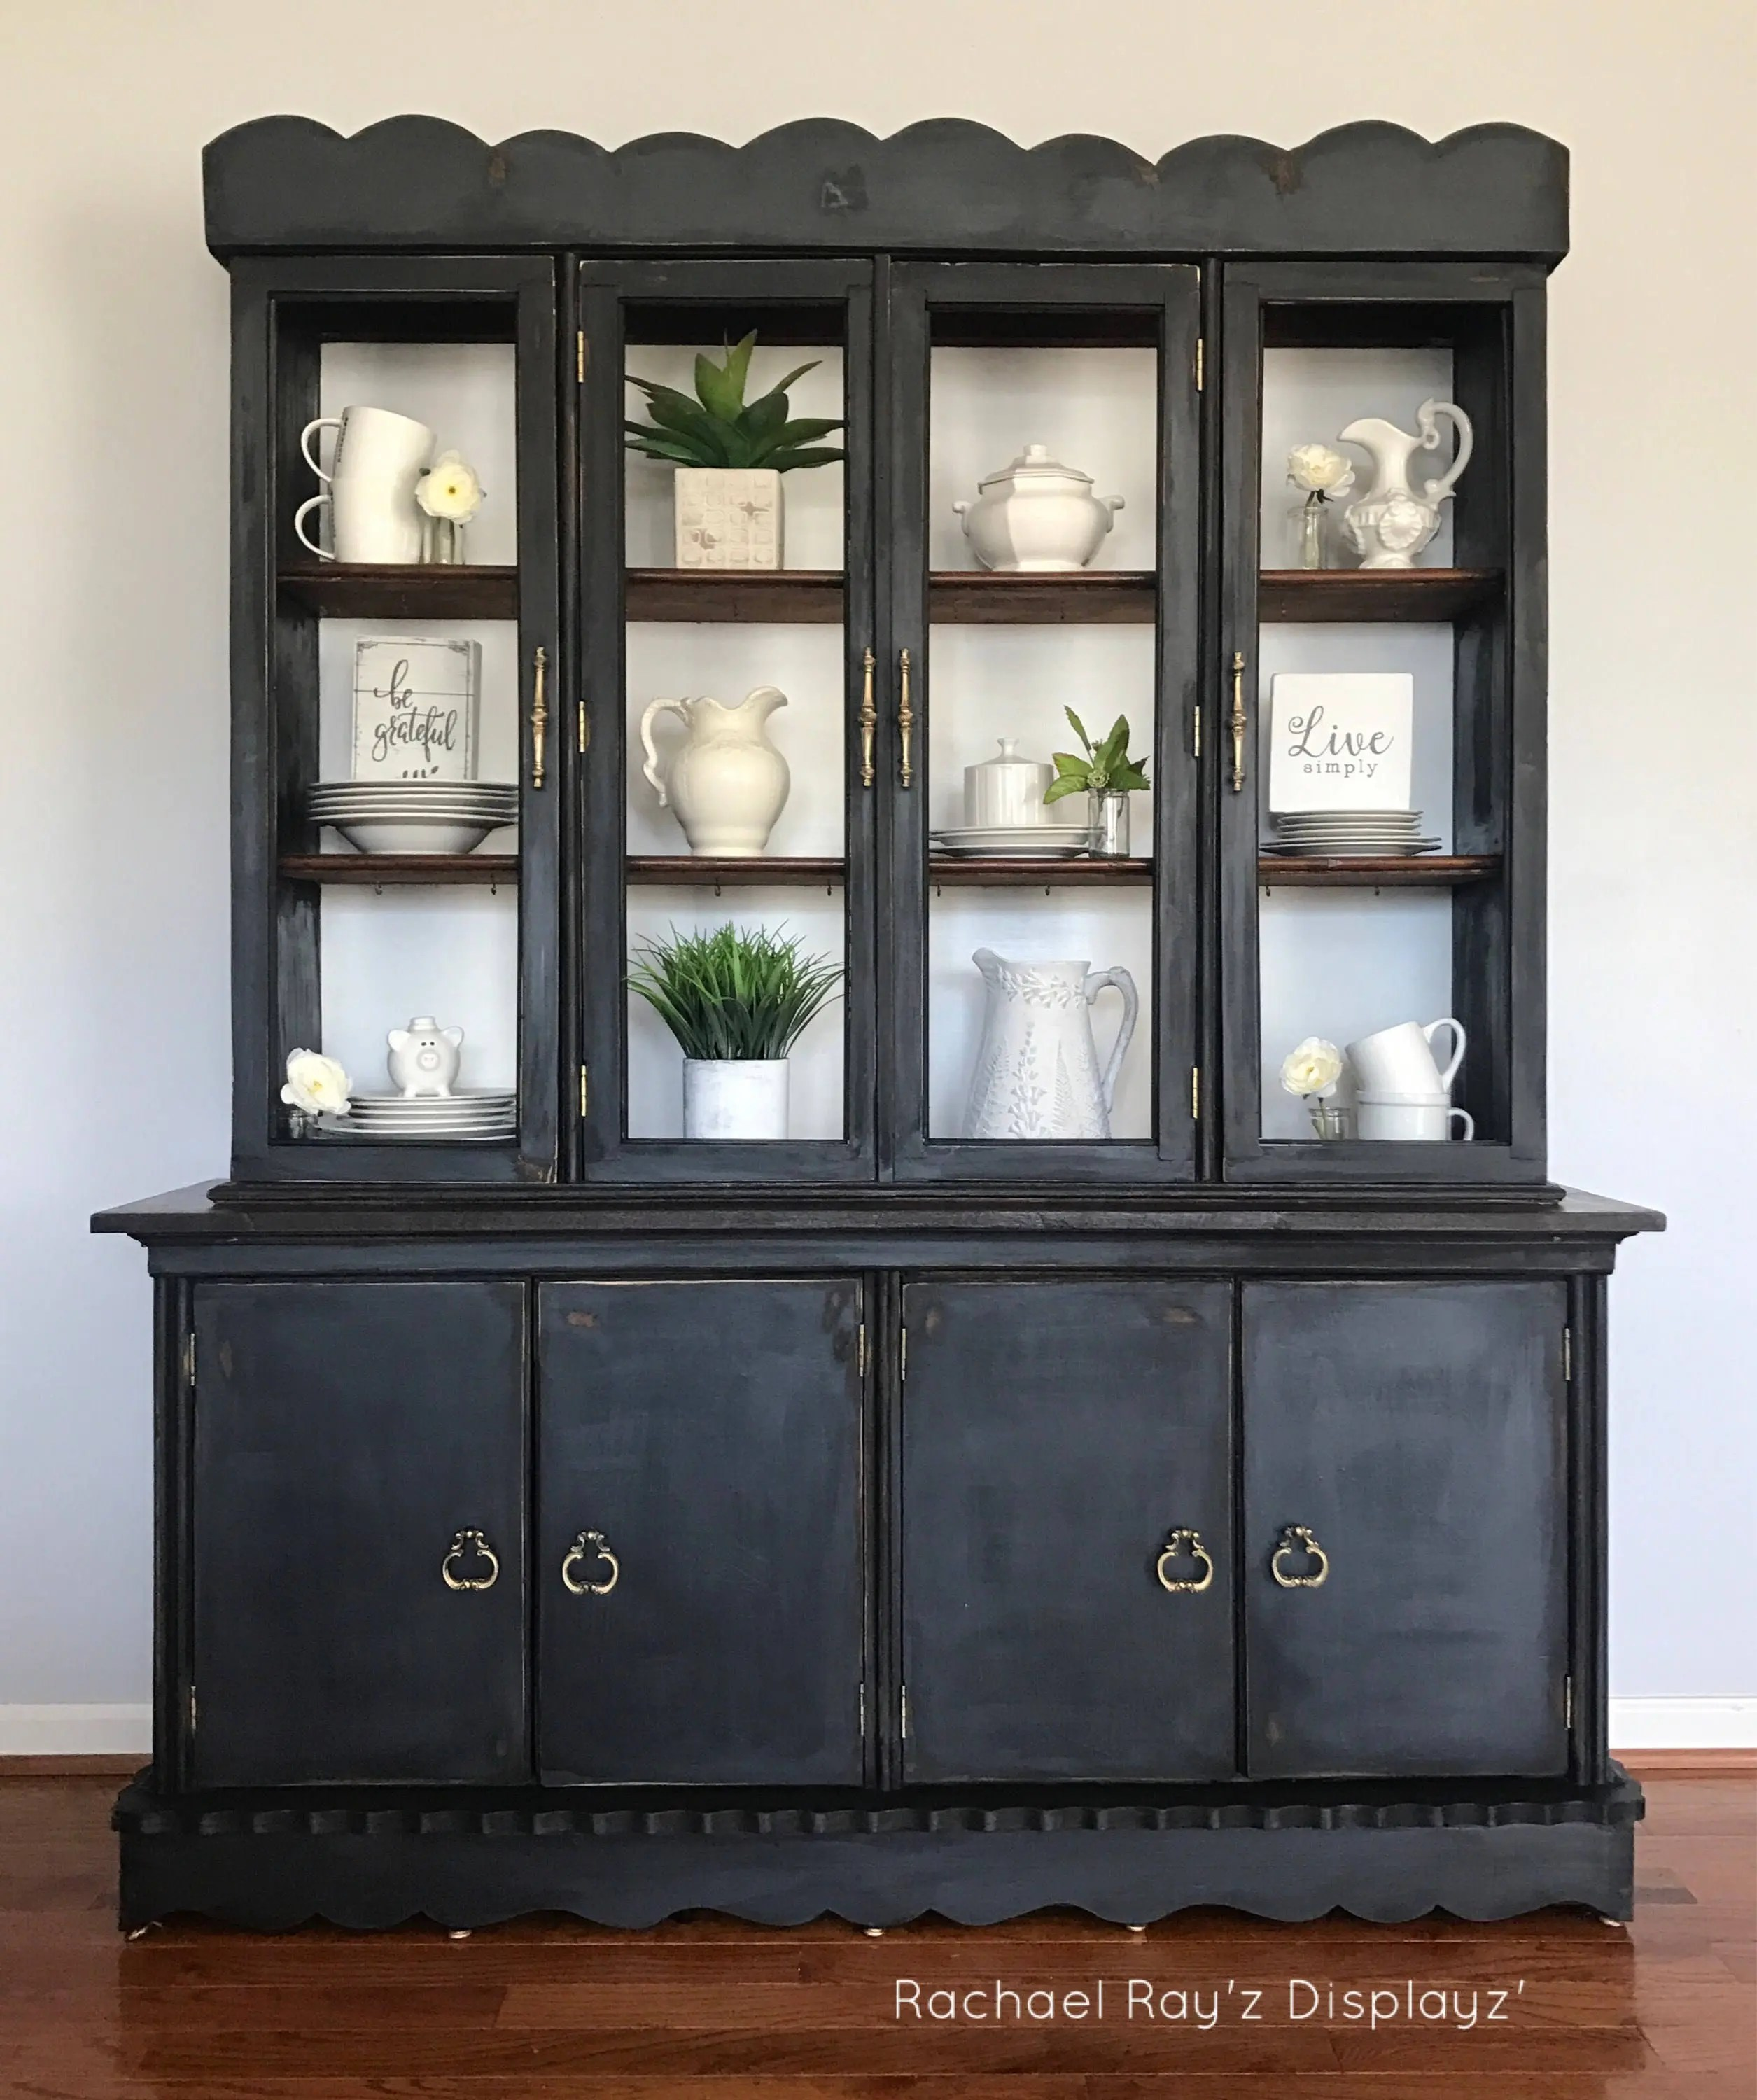 sold love the style color customize your own your choice of color finish cabinets will differ you choose the one you love black rust